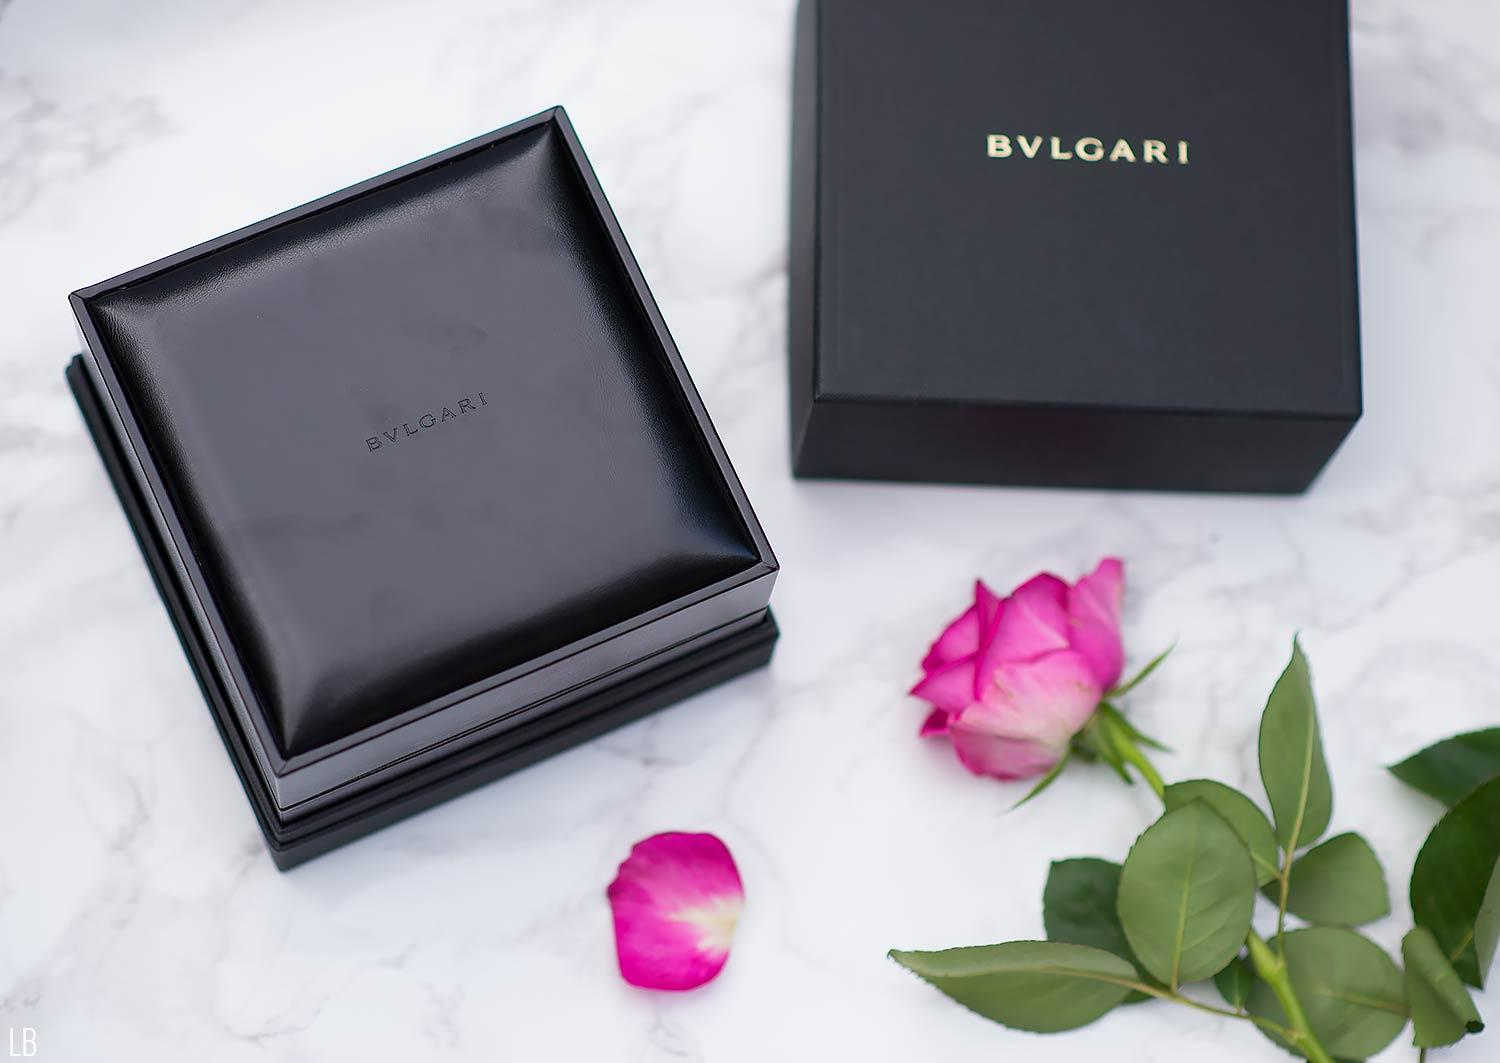 bulgari-lucea-watch-box